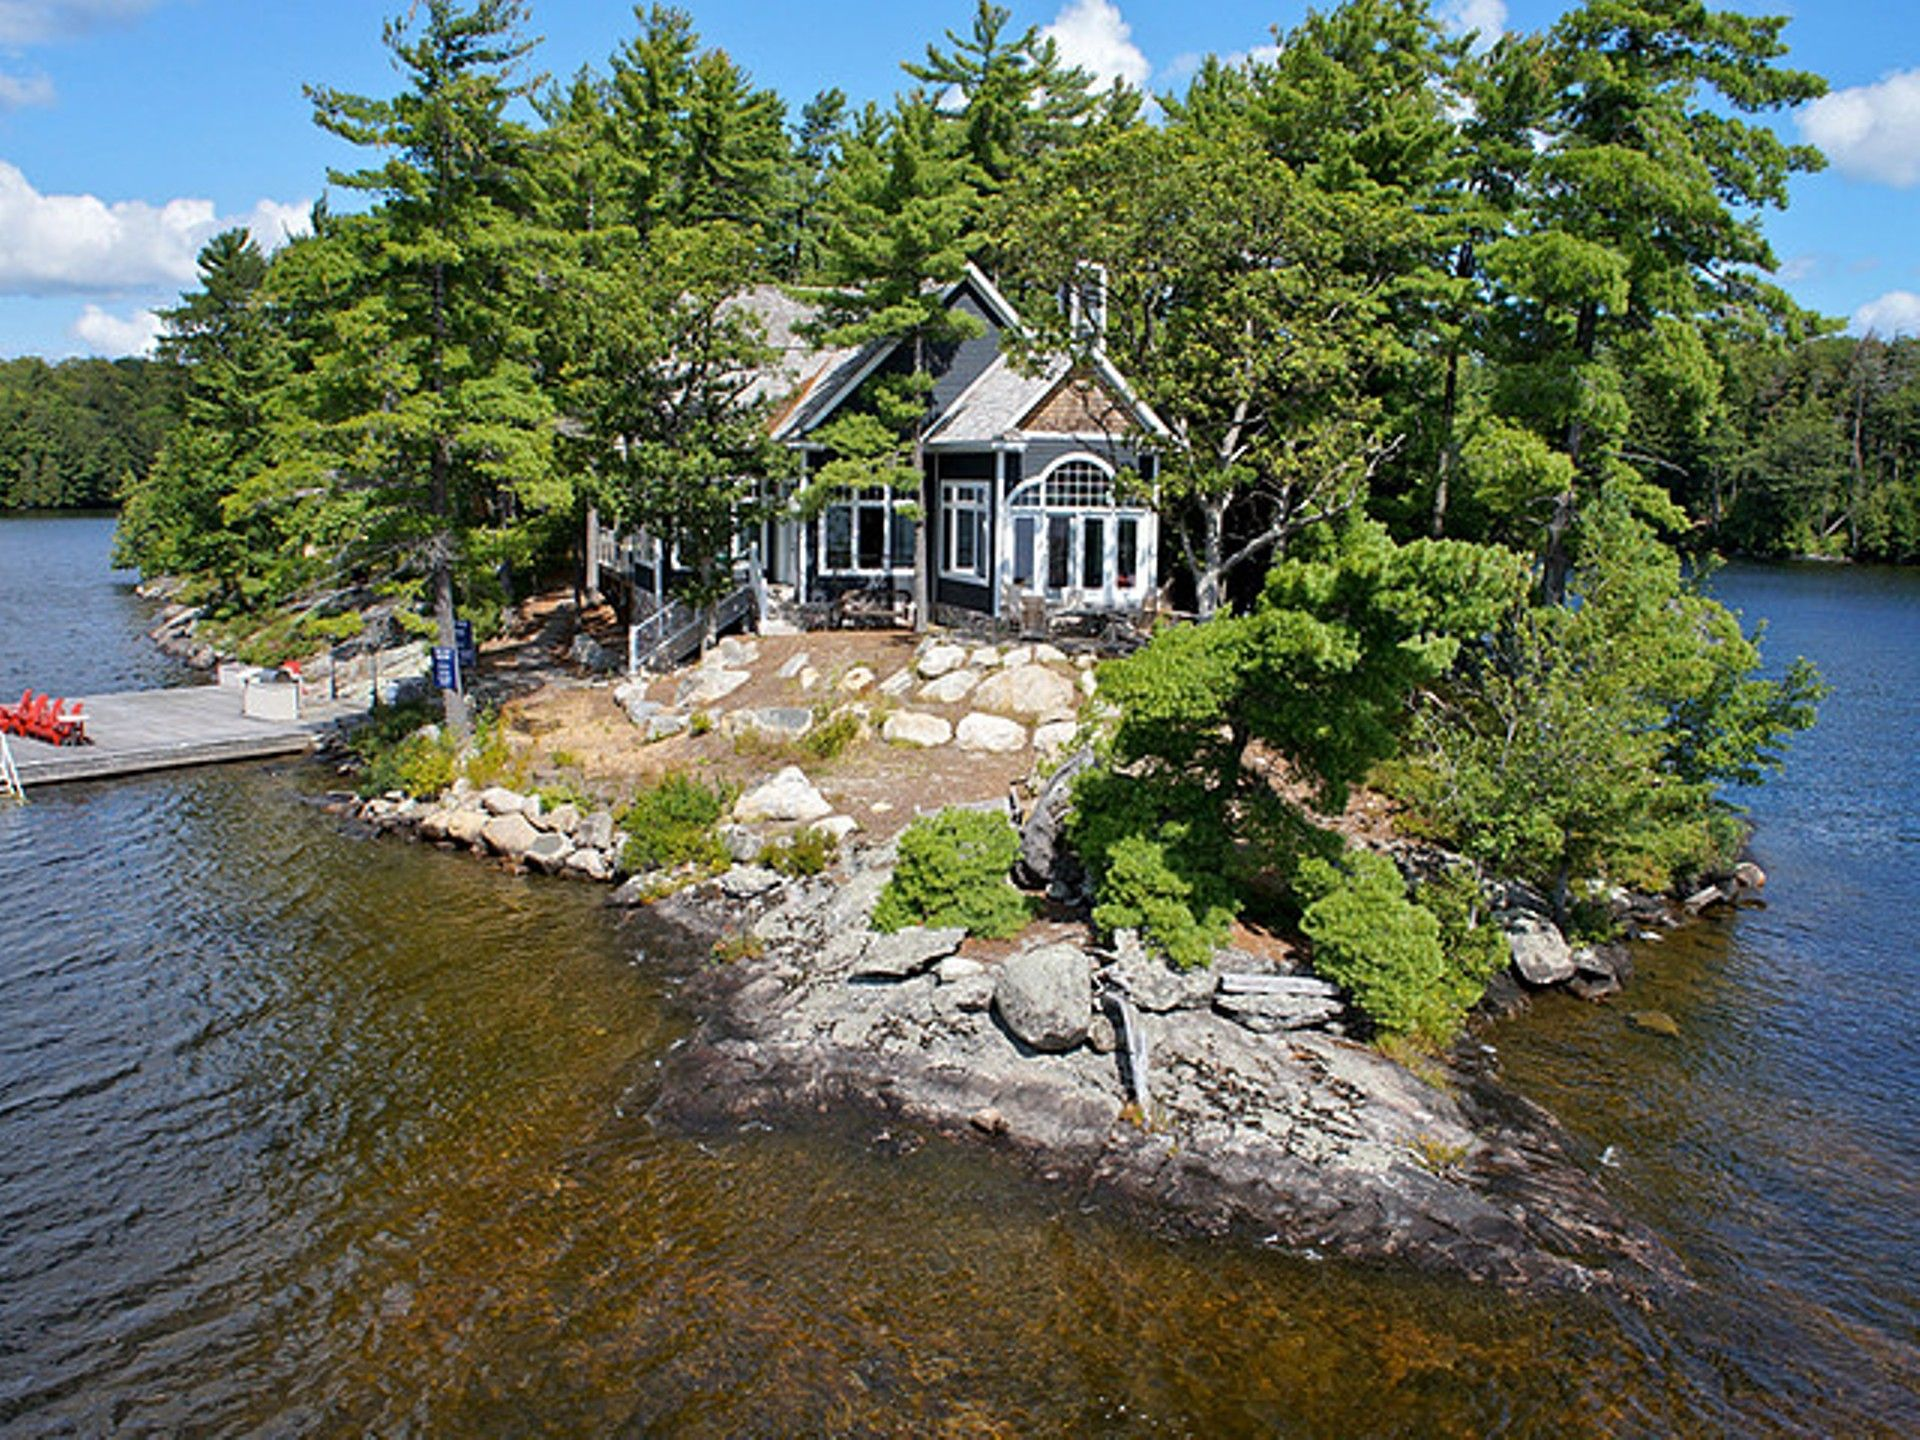 Cove island muskoka ontario lake life pinterest for The cove house